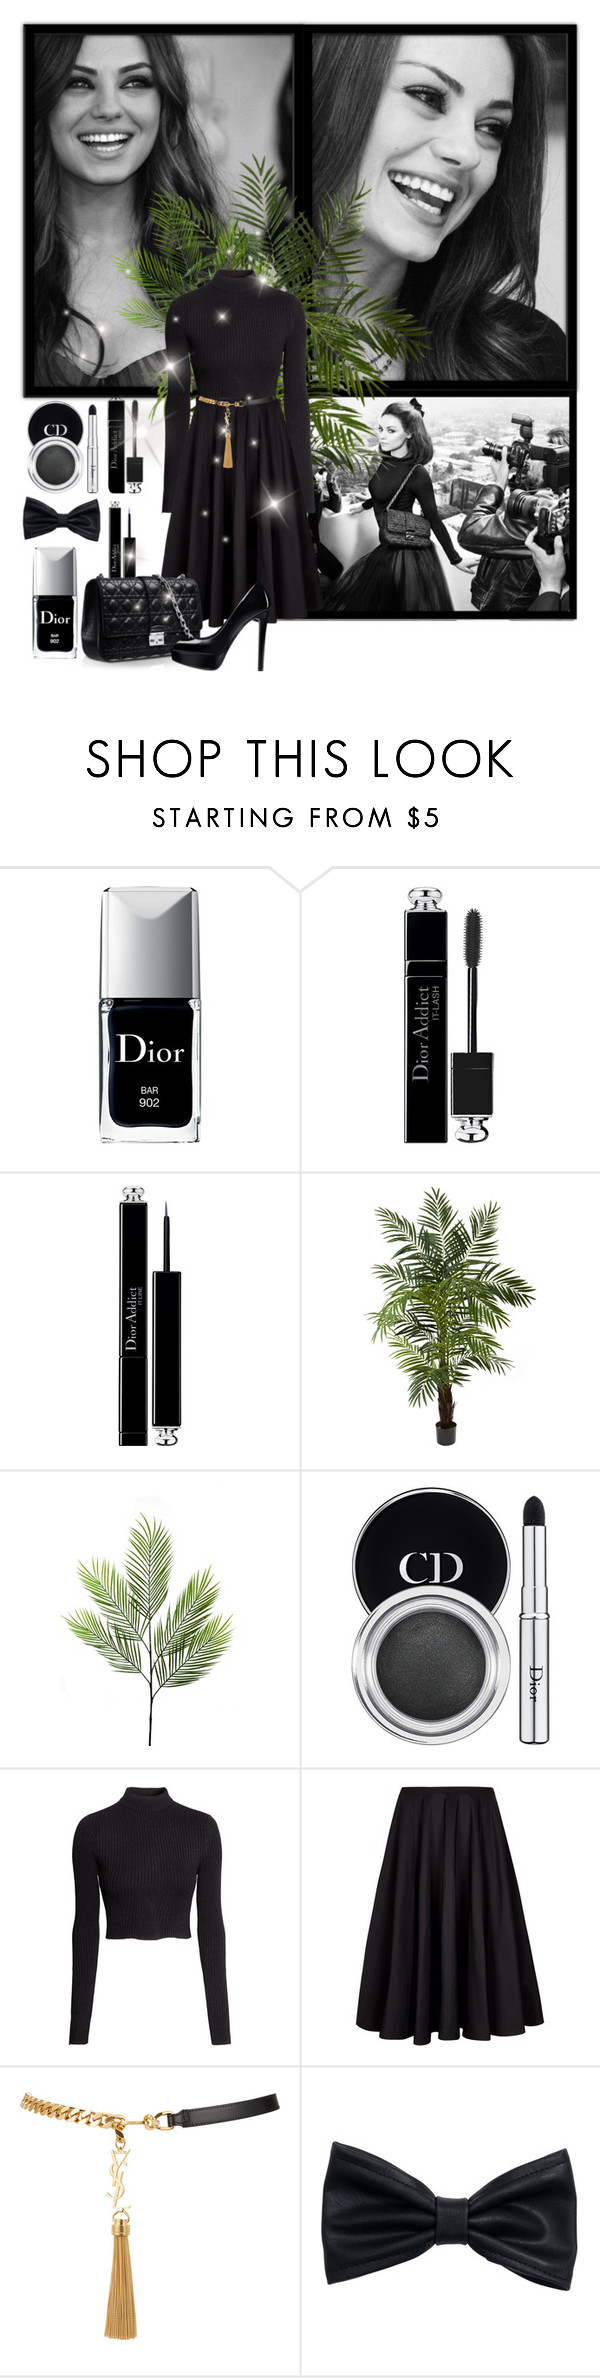 """Mila Kunis"" by giulietlove ❤ liked on Polyvore featuring Christian Dior, Nearly Natural, Linea, H&M, Ted Baker and Yves Saint Laurent"